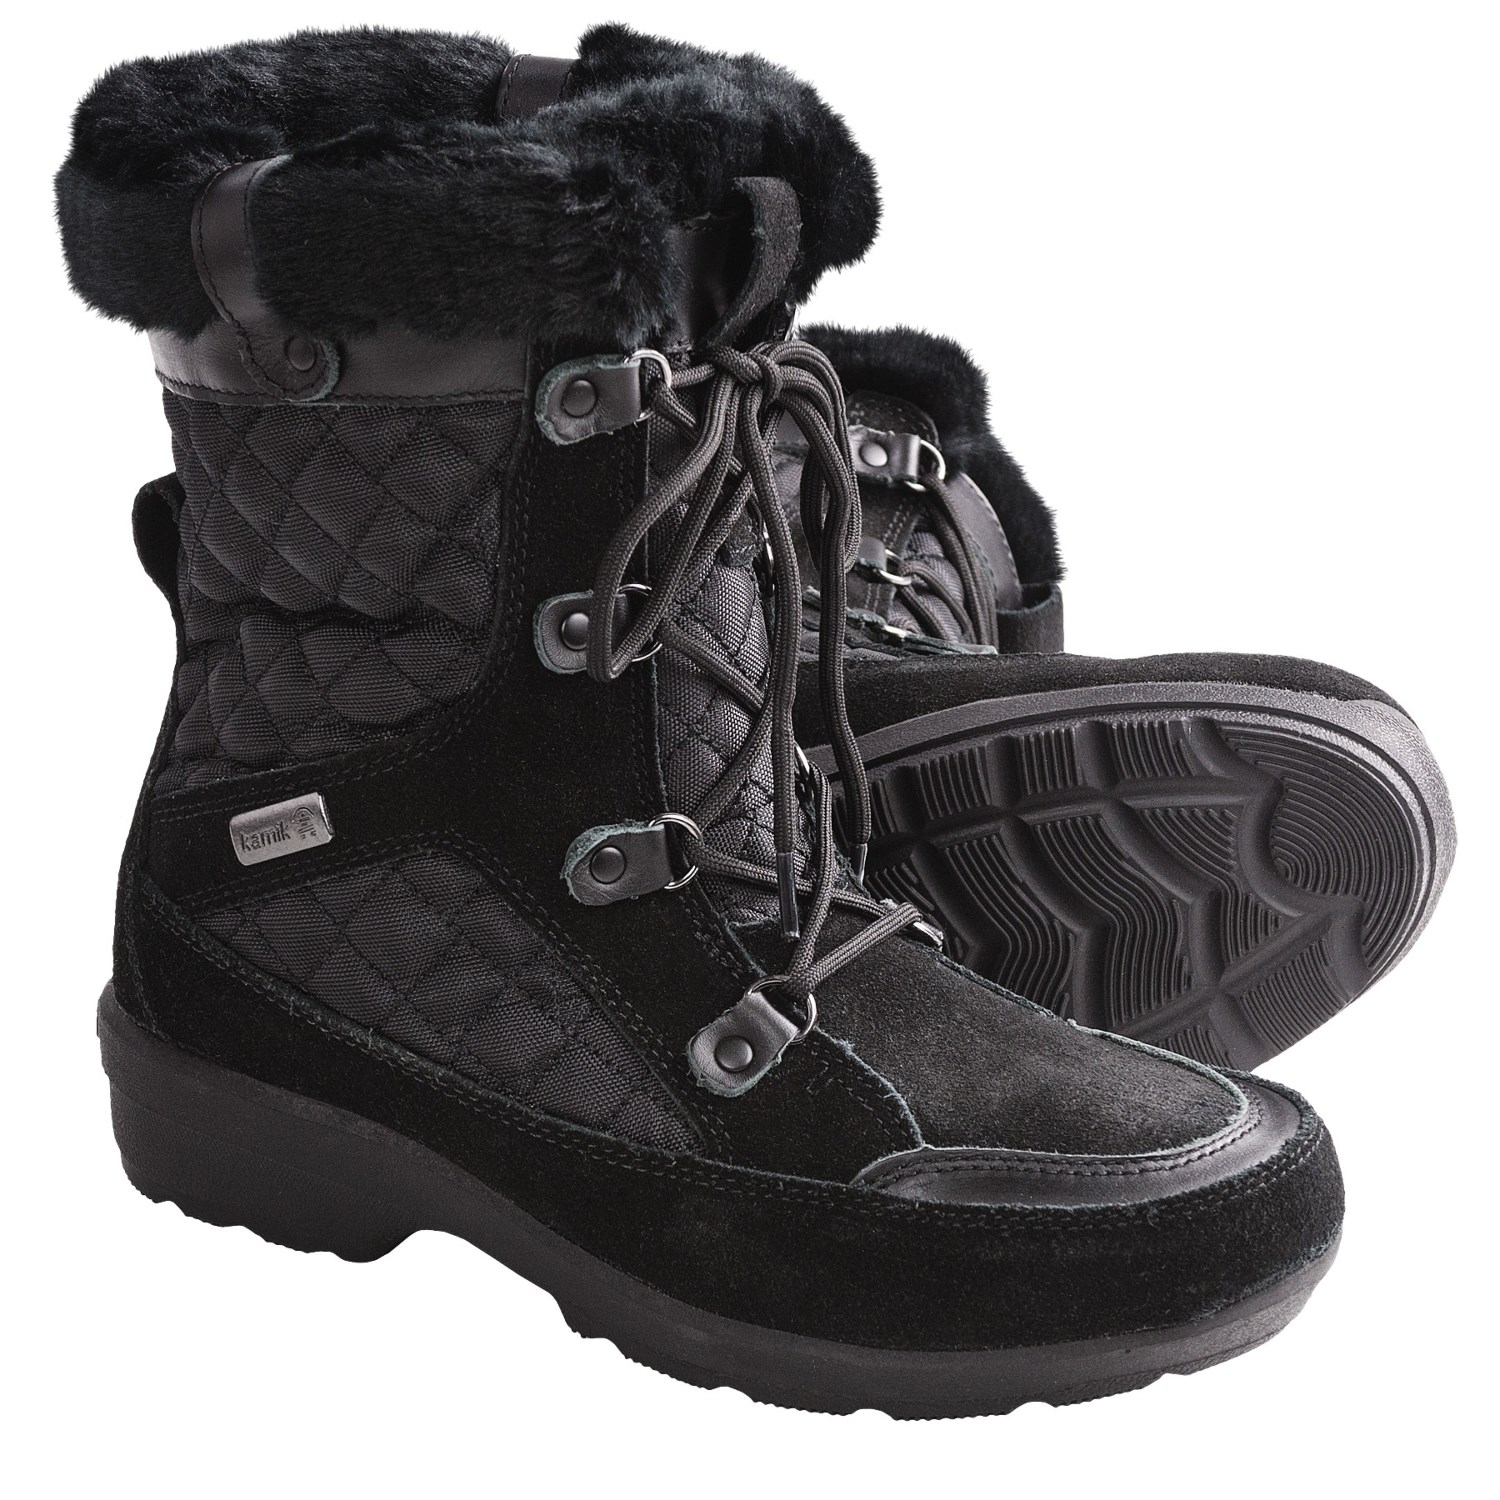 Kamik Soho Winter Boots For Women 6257h Save 37